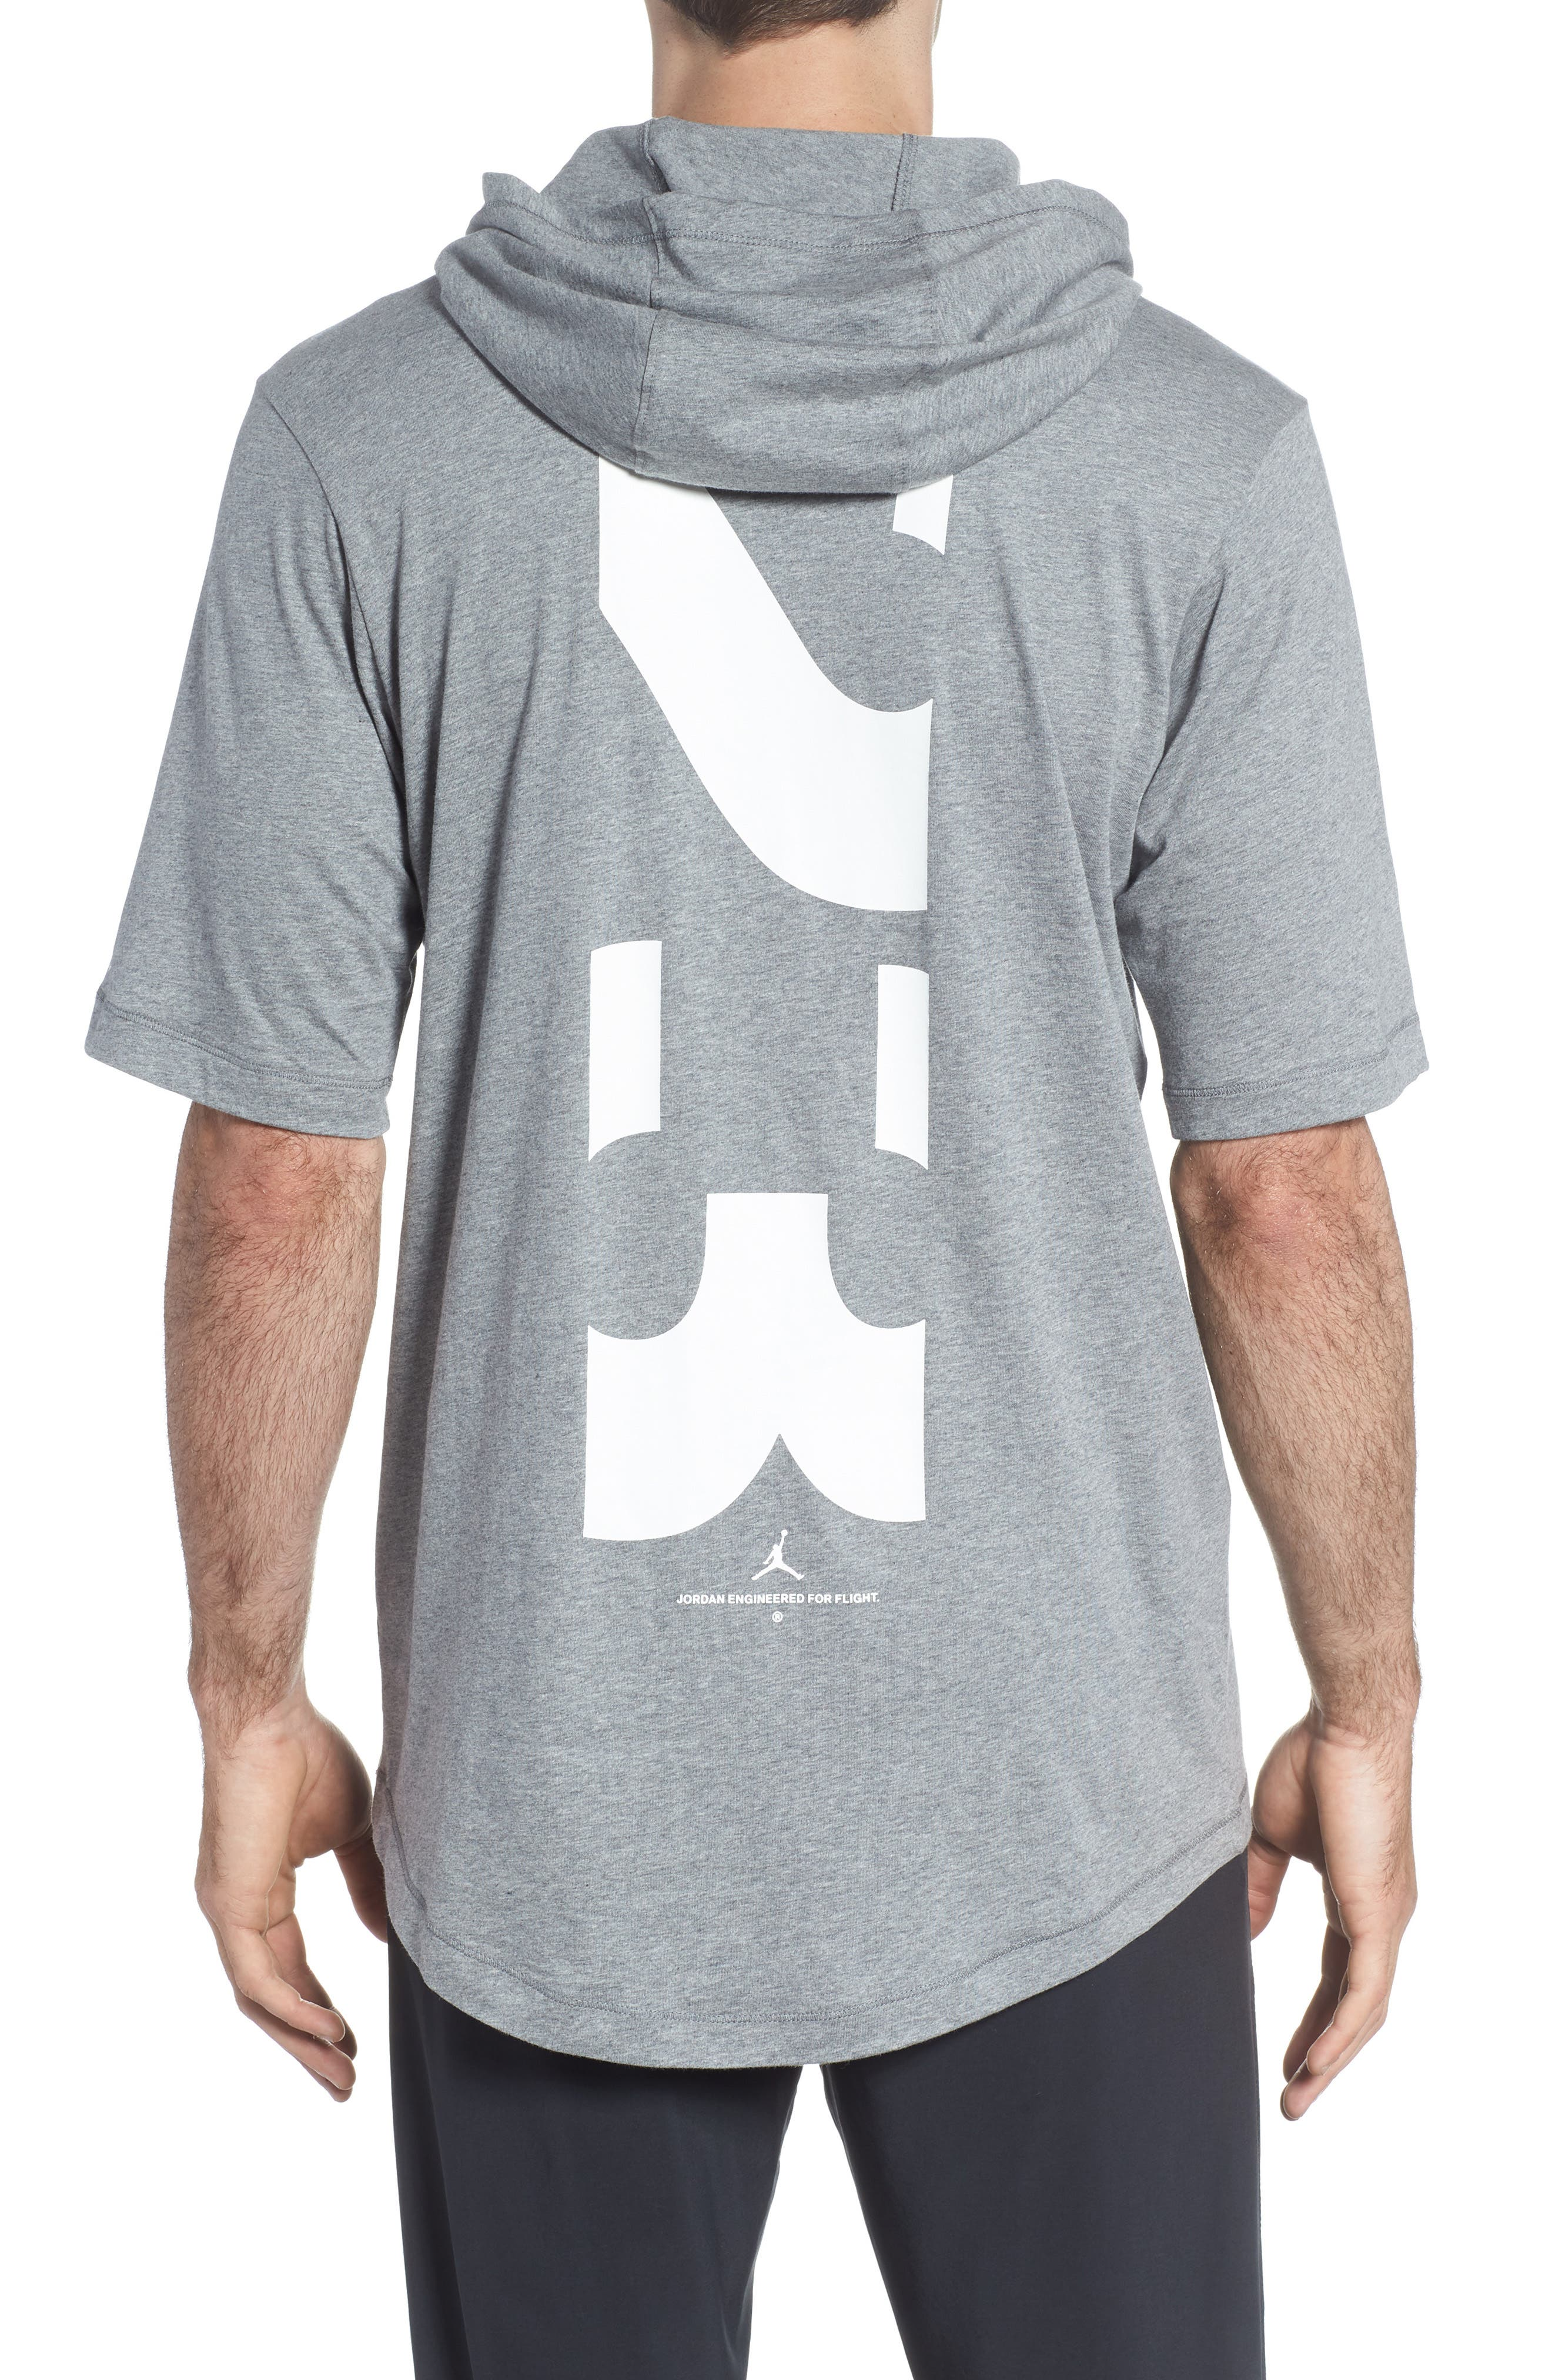 Sportswear 23 Hooded T-Shirt,                             Alternate thumbnail 2, color,                             CARBON HEATHER/ WHITE